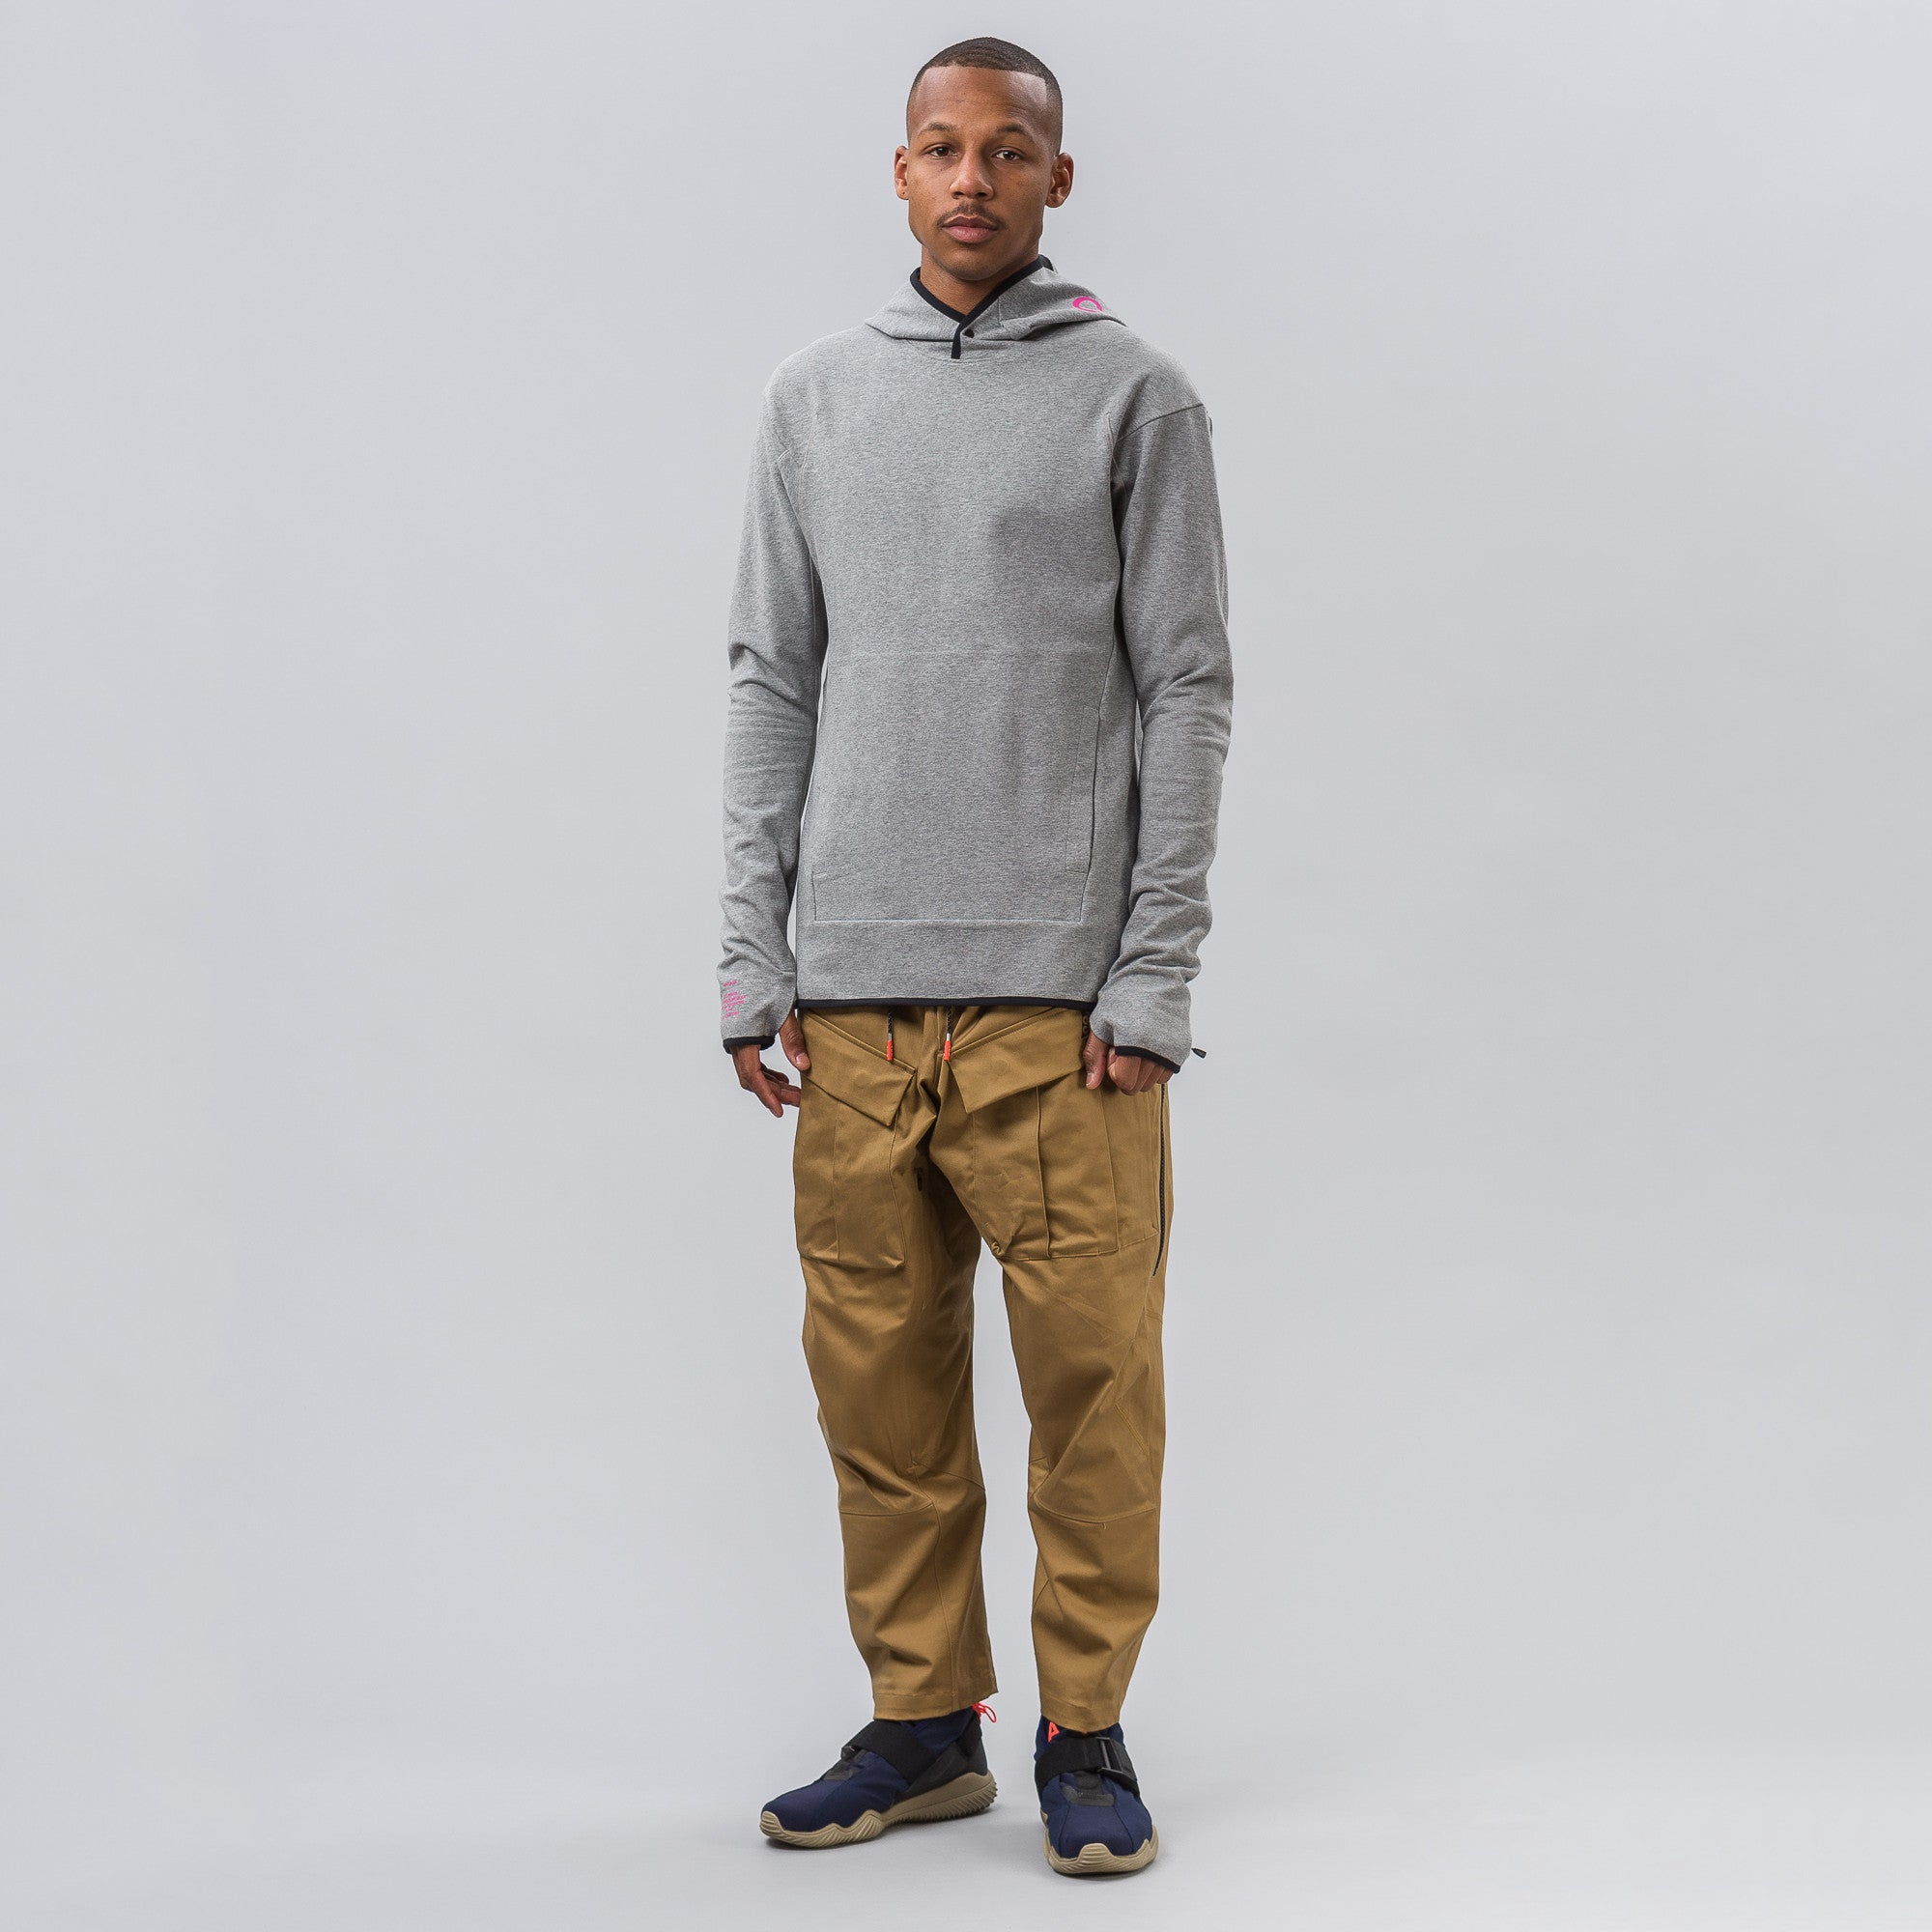 NikeLab ACG Pull-Over Hoodie in Carbon Heather/Cool Grey